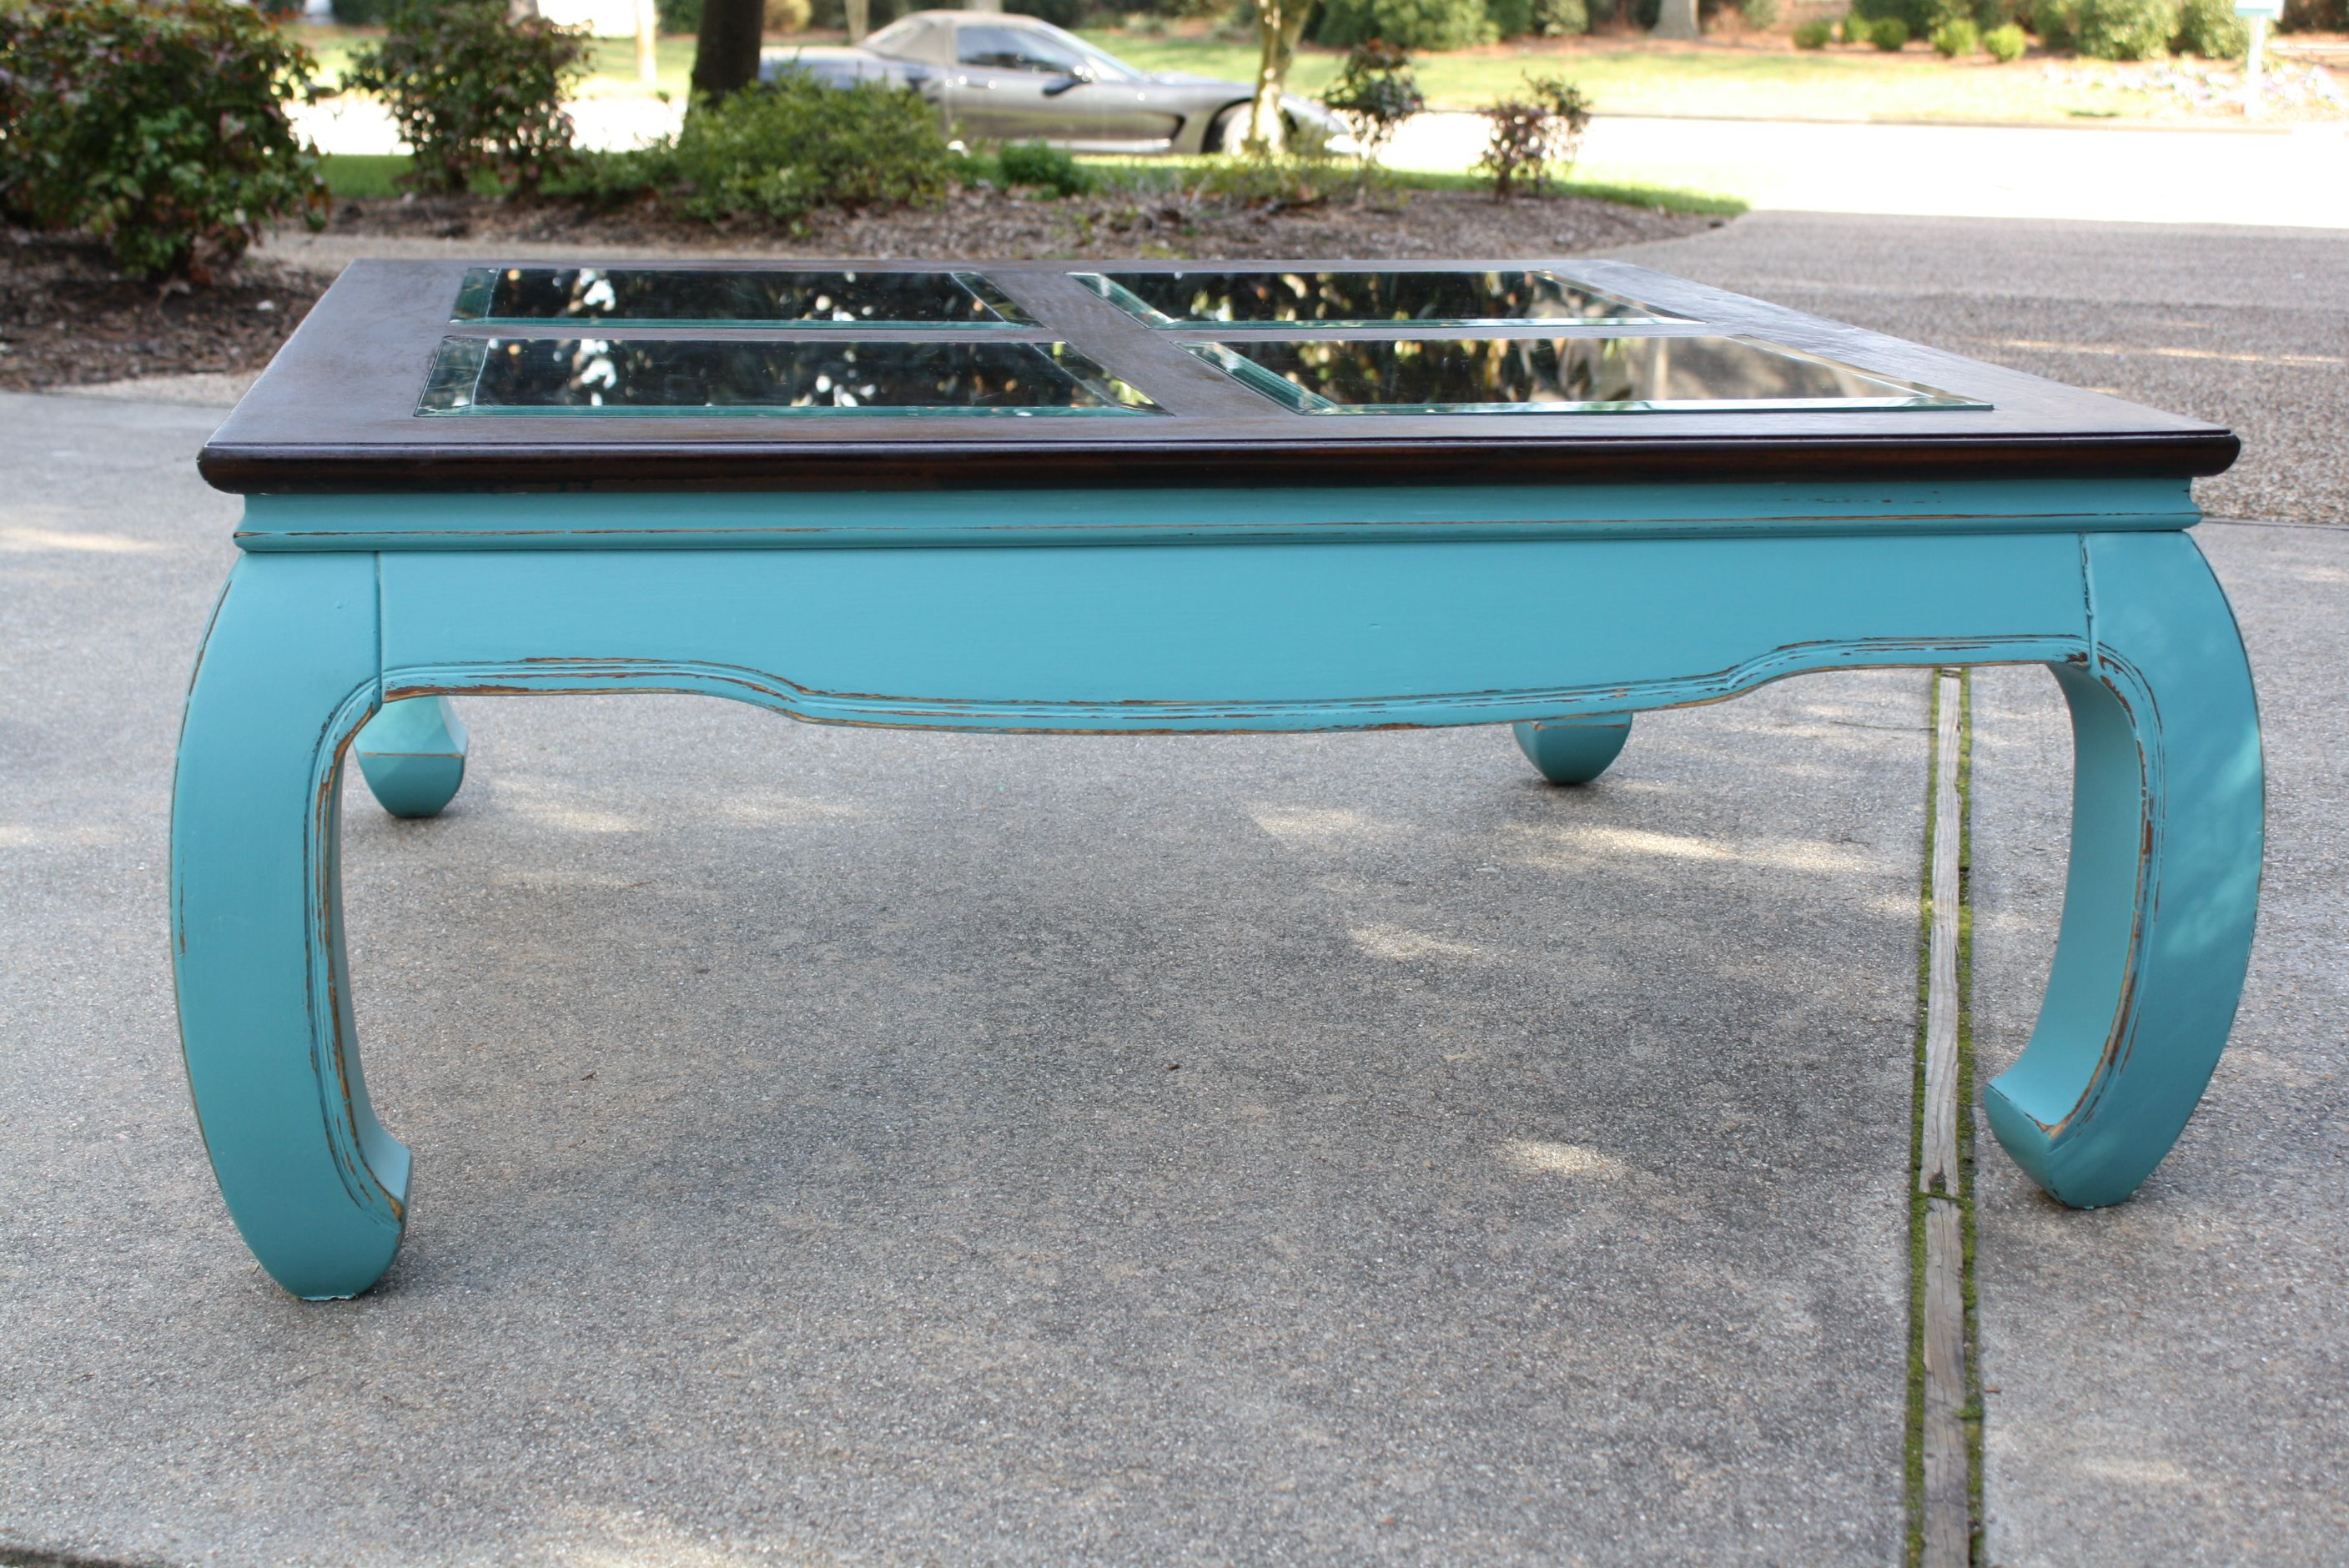 Teal Coffee Table With Glass Inserts Teal Coffee Tables Coffee Table Decor [ 1880 x 2816 Pixel ]